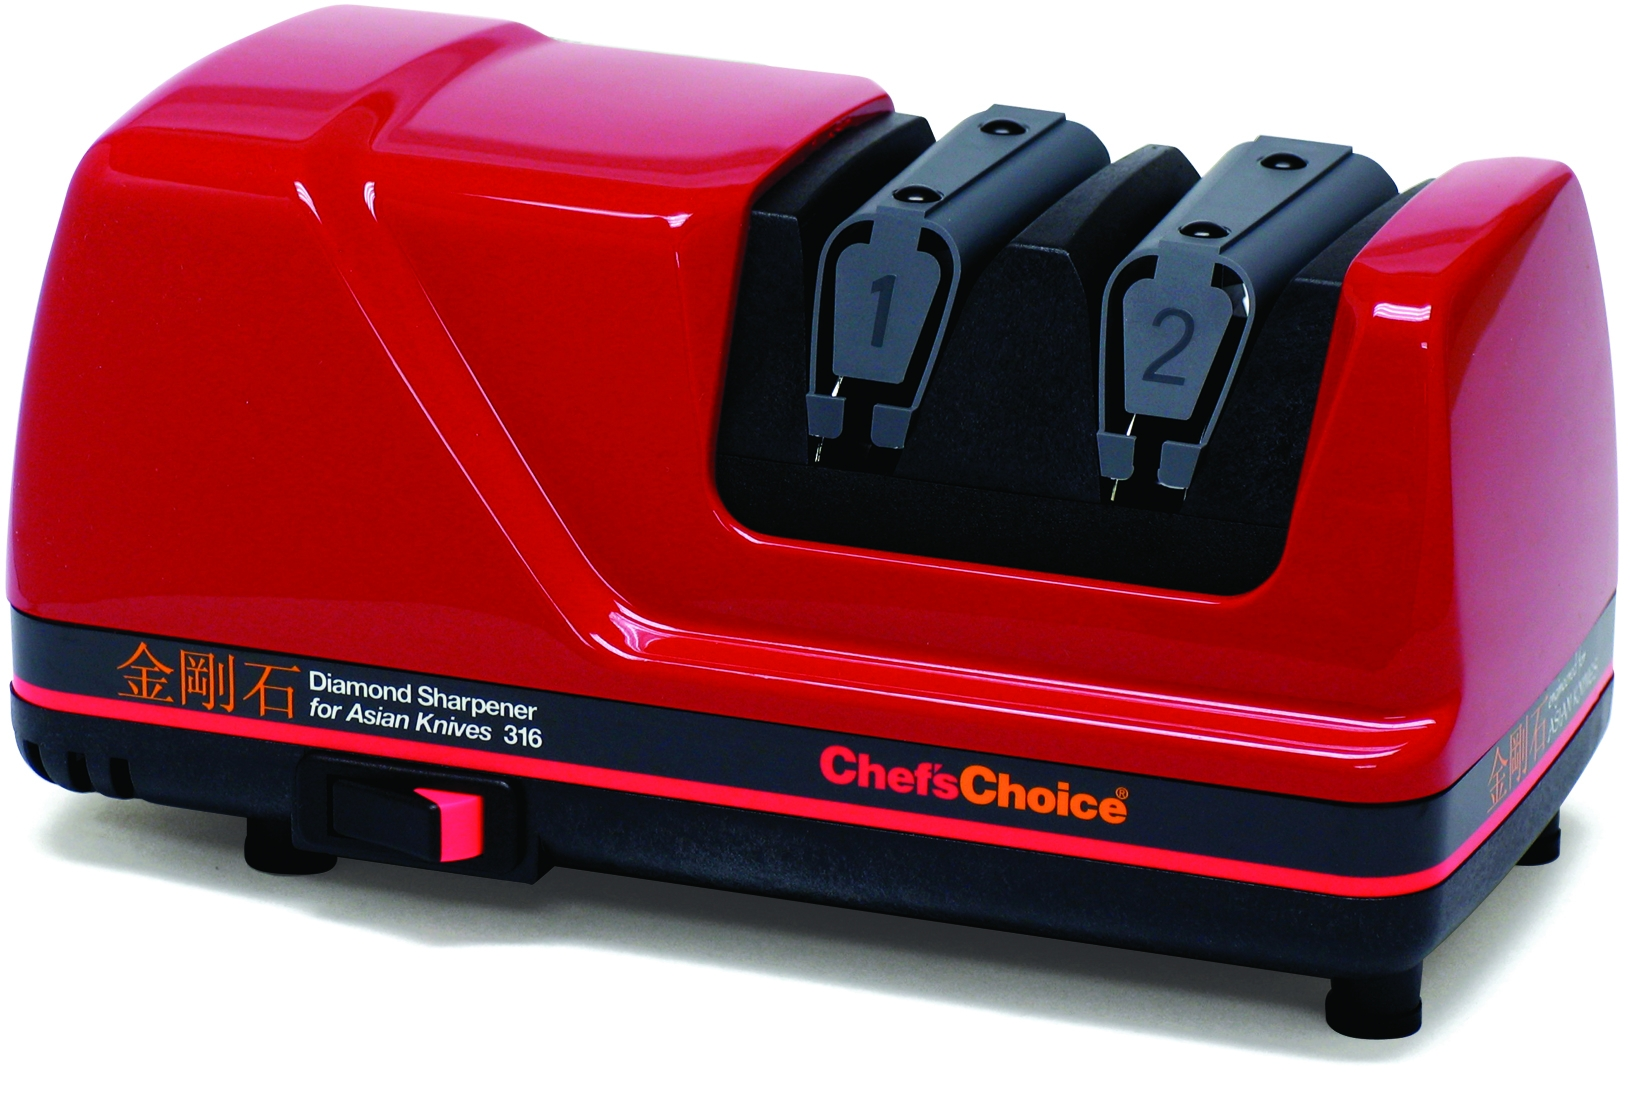 Chefs Choice 0316002 Diamond Sharpener for Asian Knives in Red by Edgecraft